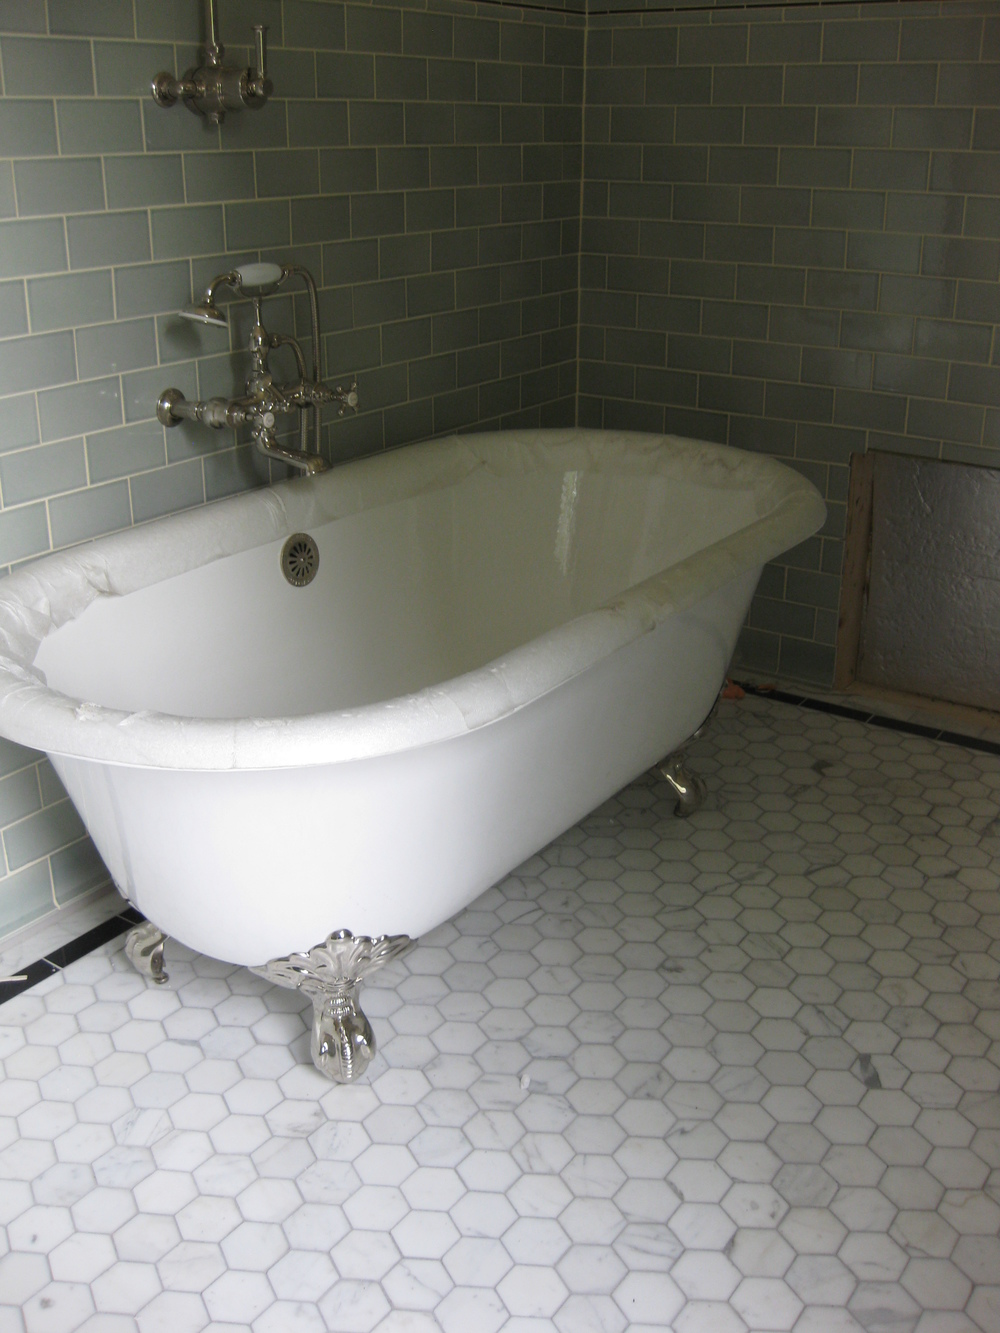 Bathrooms tile installation floor tile consist of carrara marble border granite border and dailygadgetfo Gallery